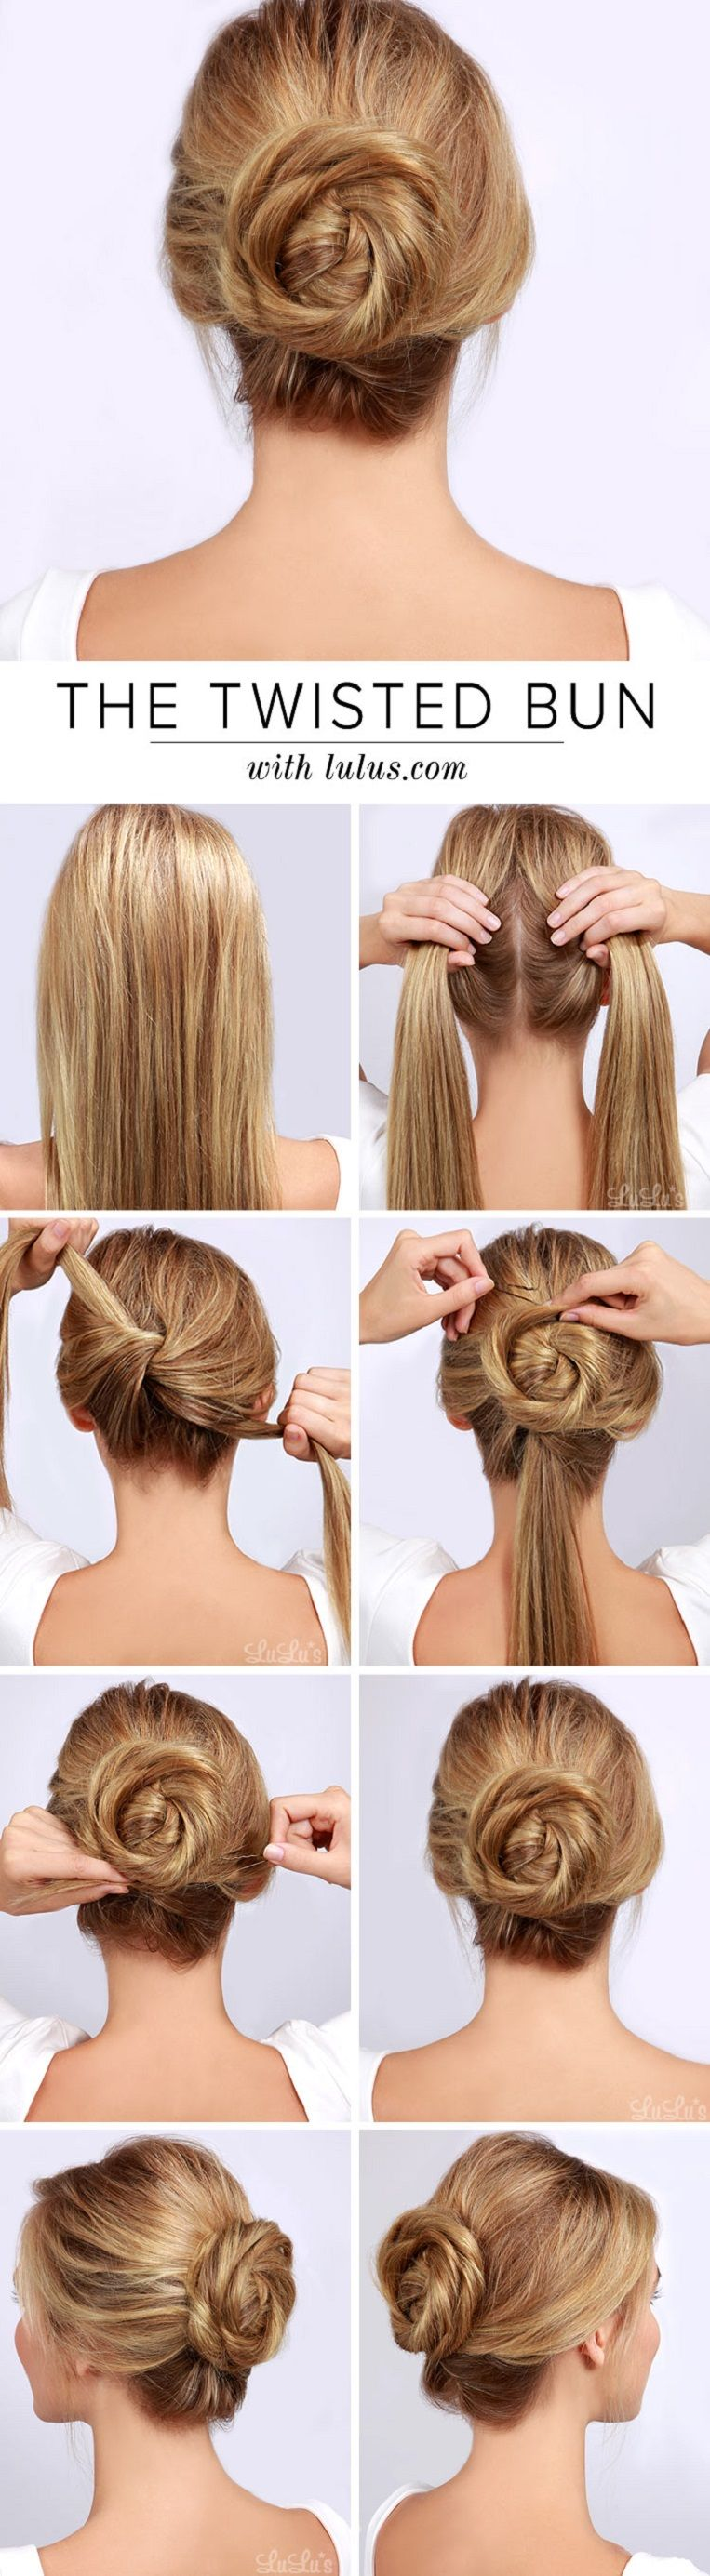 Easy but gorgeous hairstyles for busy mornings easy hairstyles